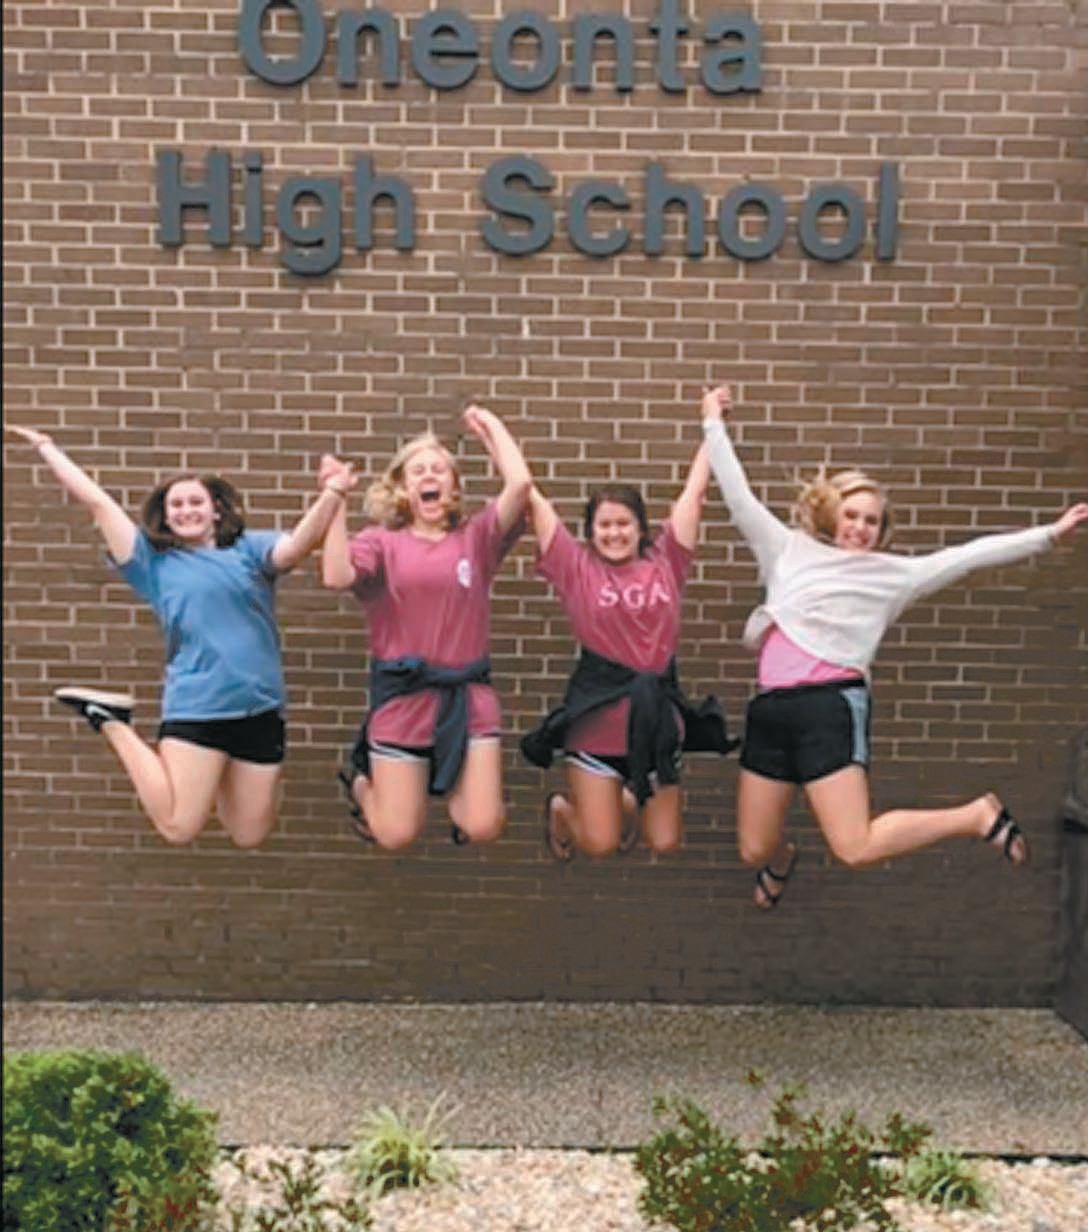 Taylor Claburn, Ashton Boyd, Savannah Tibbet, and Karalise Cook are jumping for joy as they graduate from Oneonta High School.